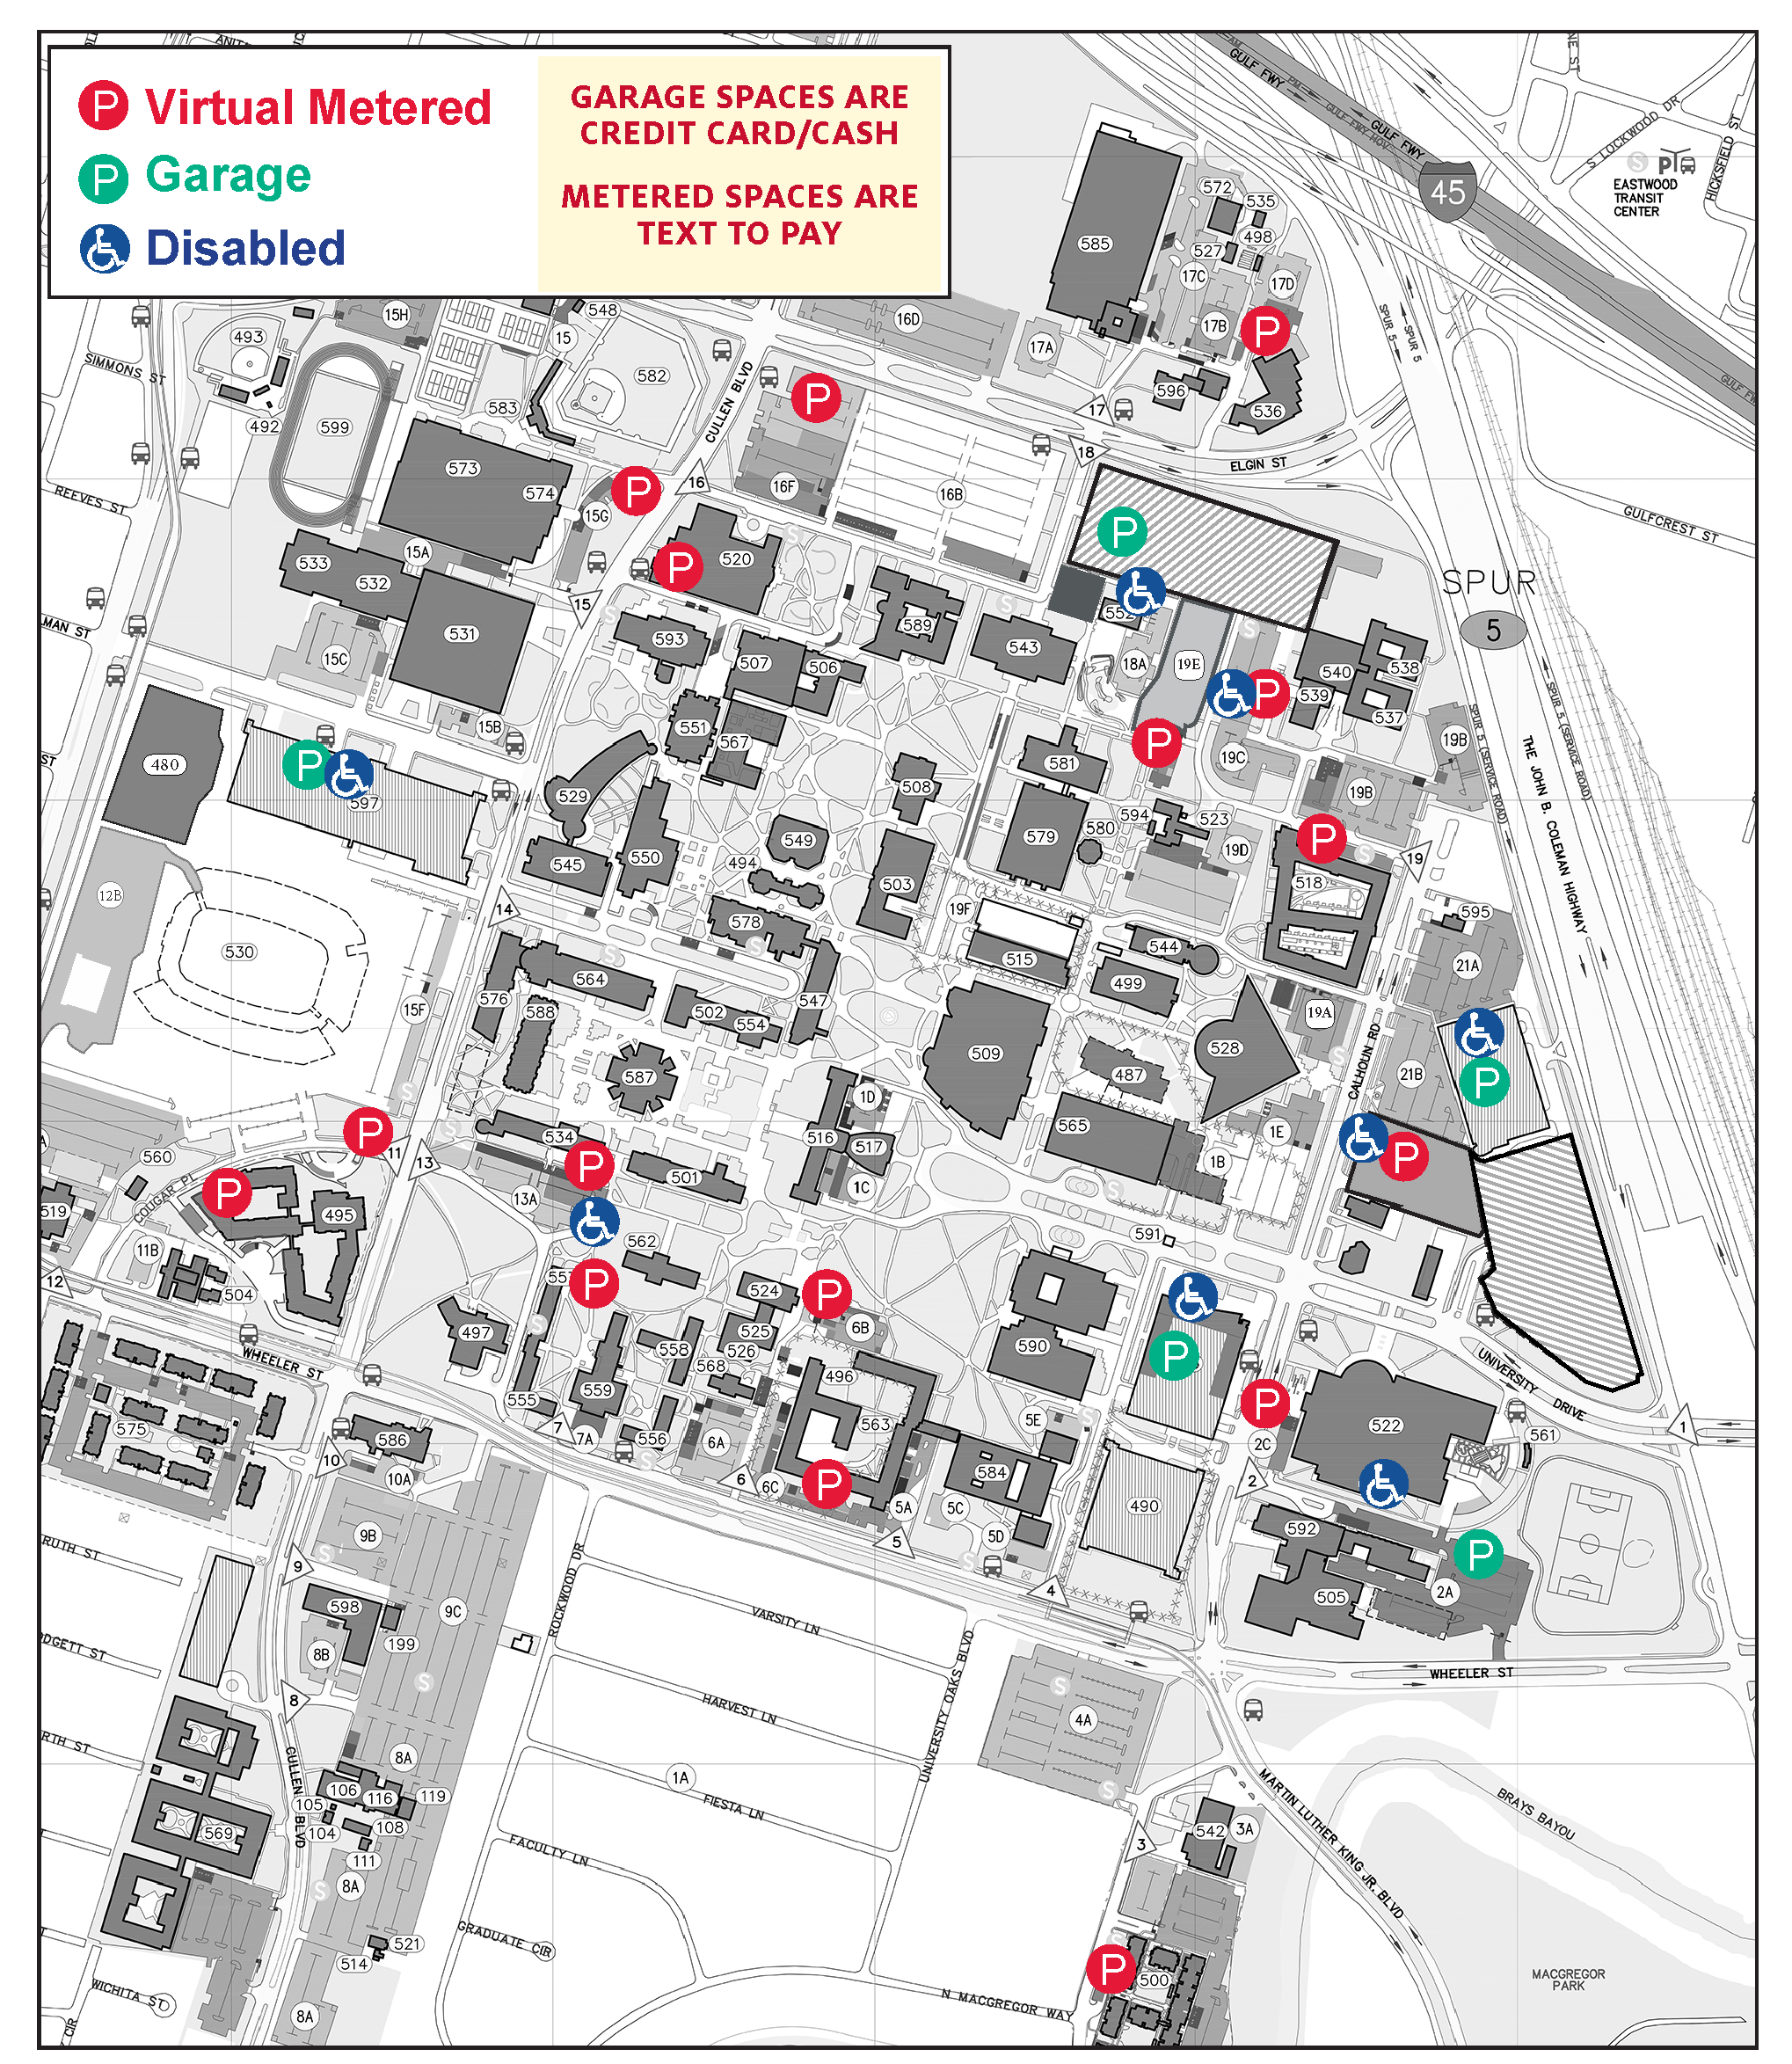 u of h campus map Parking Maps University Of Houston